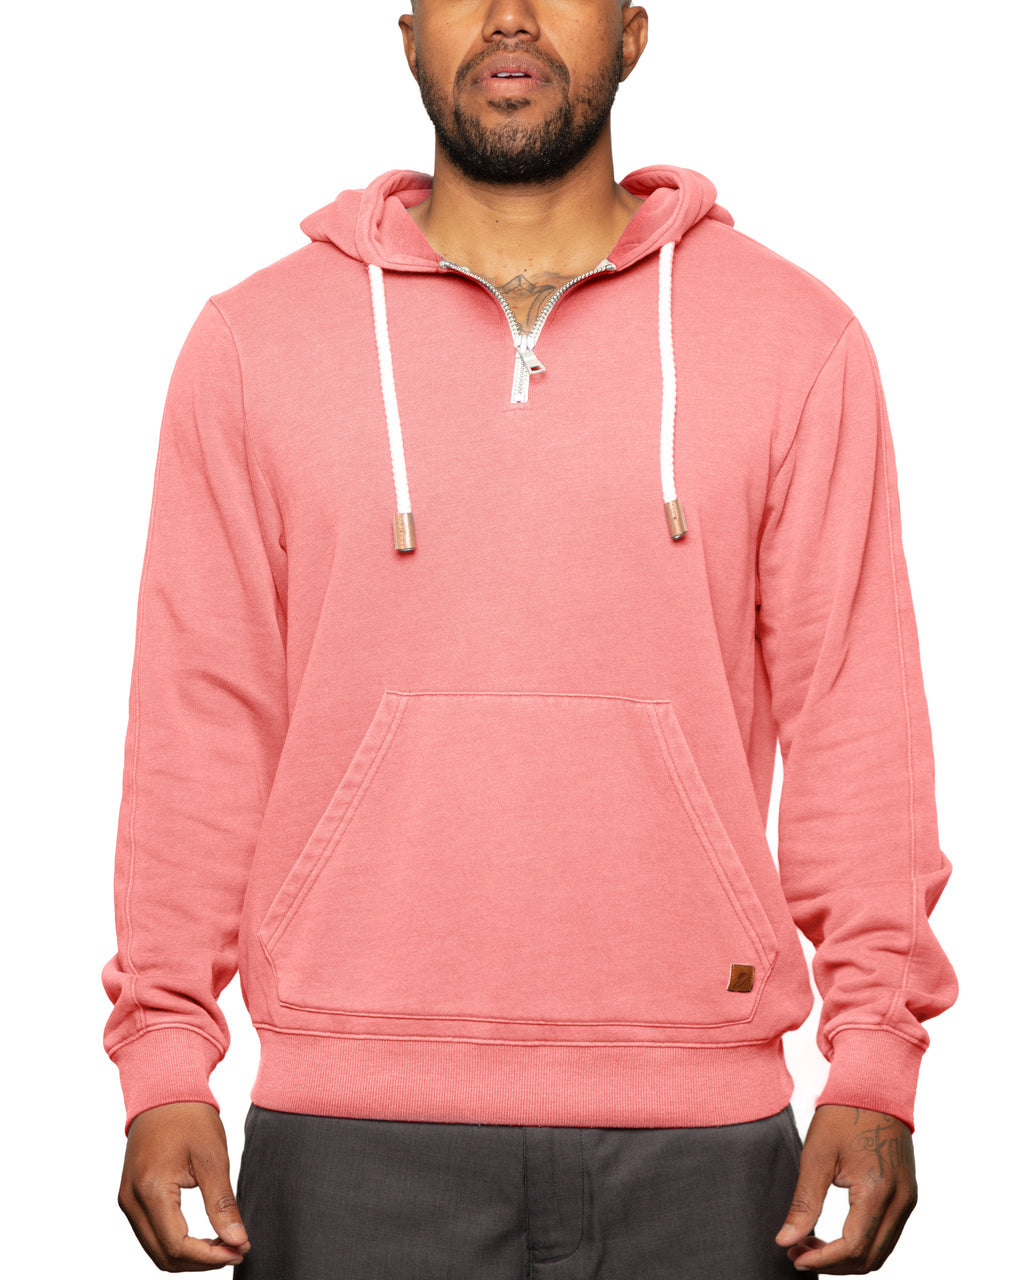 """Later"" 1/4 Zip Spring Weight Pull Over Hoodie - Fundamental Coast"